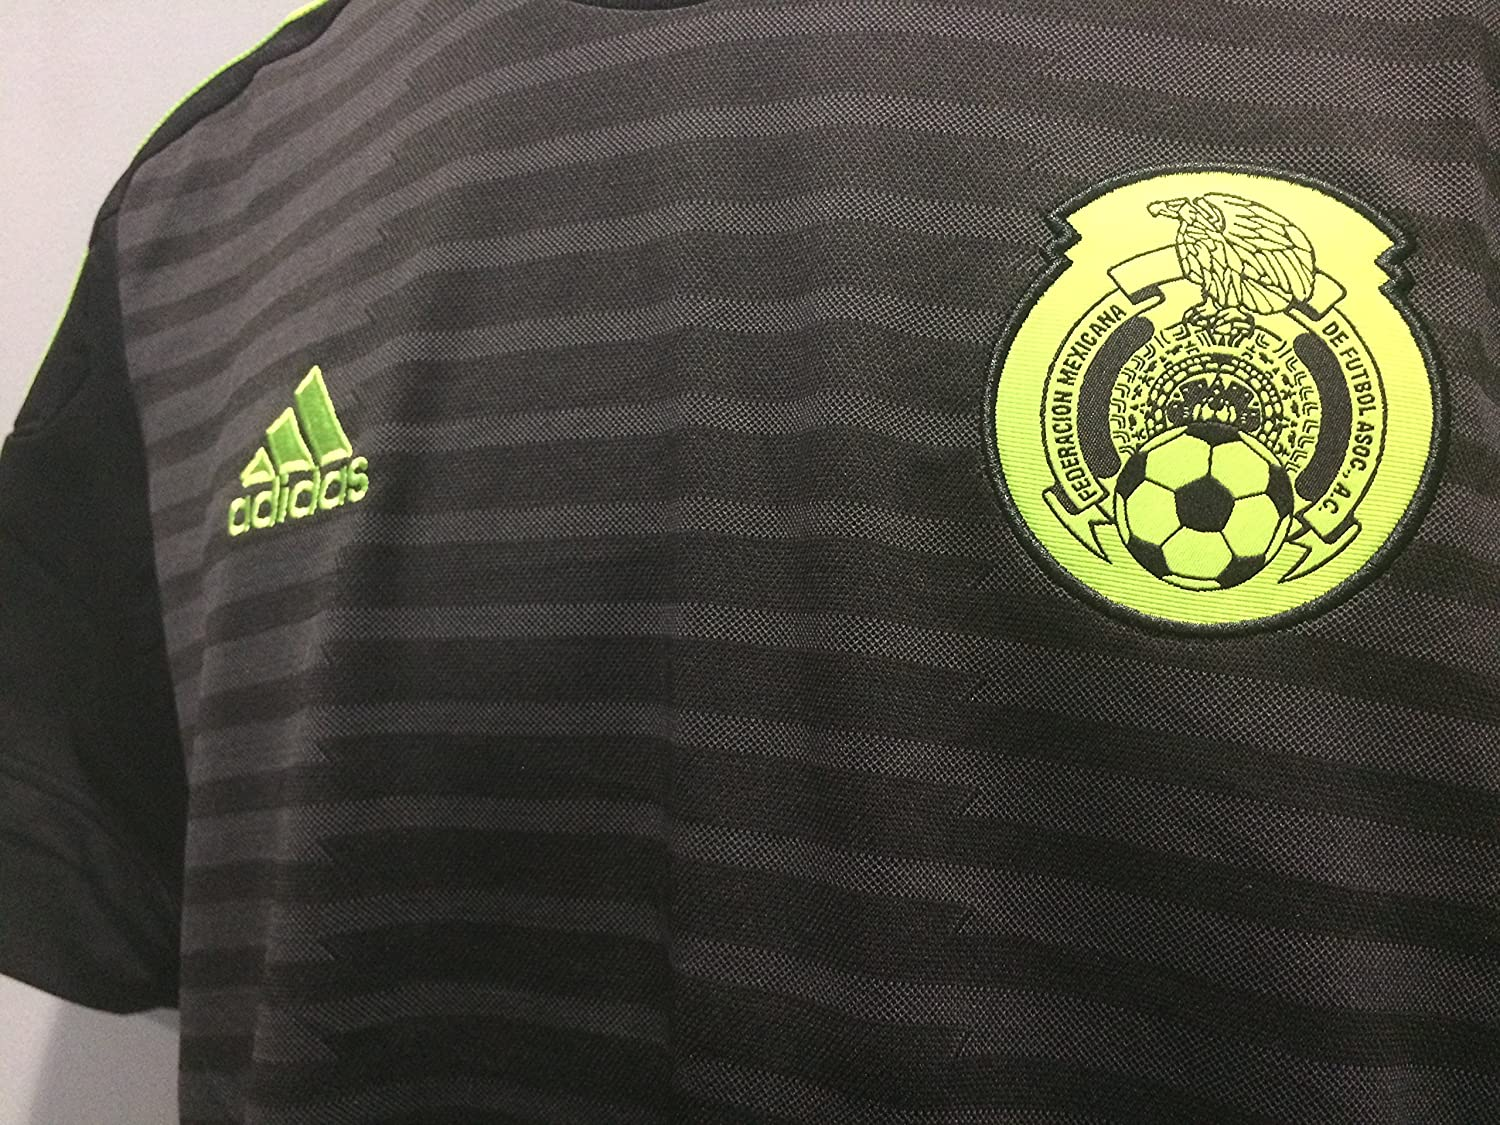 Amazon.com : Seleccion Mexicana Black Jersey Pumas America Chivas : Sports & Outdoors